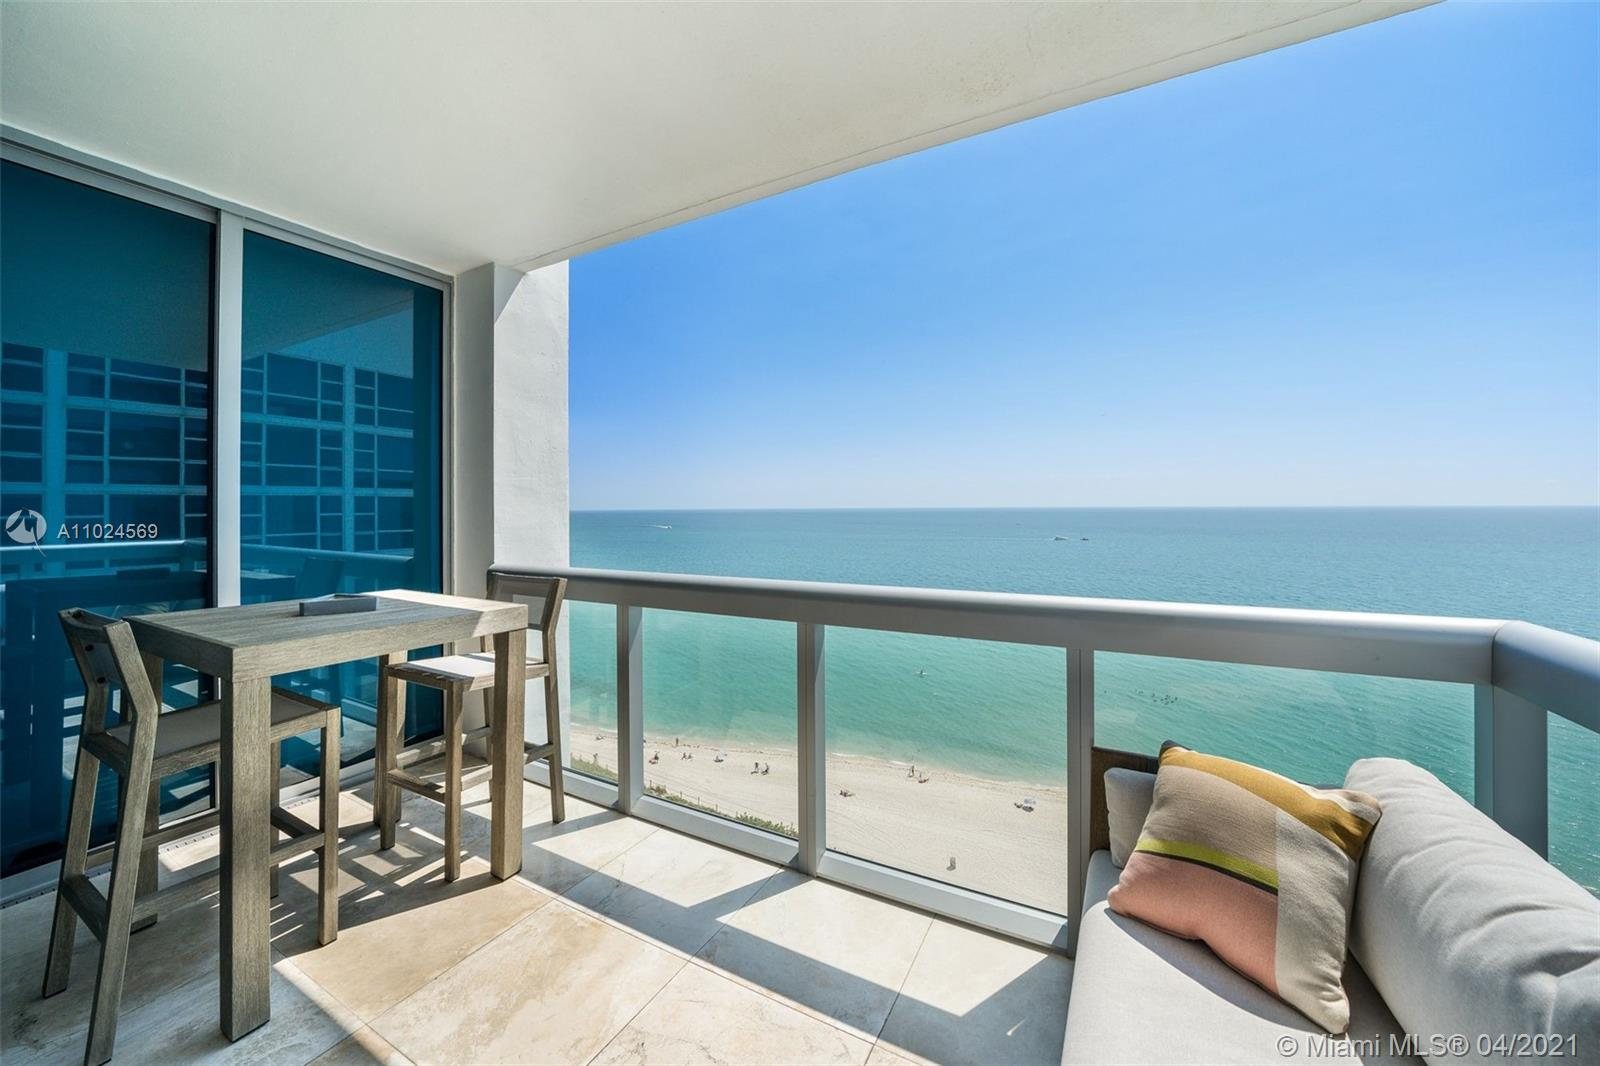 The ultimate in glamorous oceanfront living, this Carillon Residences condo occupies a class all its own! Magnificent in proportion & unstinting in luxury, this 2BD/2BA corner unit opens upon a bright & breezy open layout that immediately seizes attention w/direct ocean panoramas. A stunning gourmet kitchen claims the spotlight, ready for culinary excellence. A private balcony makes a great addition of entertainment space just off the living room w/unobstructed ocean views. The window-wrapped master indulges the senses w/glittering seascapes & spa-like ensuite. This building enjoys direct access to 750ft of white sand beach, valet, 24hr doorman lobby & concierge. Residents also enjoy access to the incredible amenities at the Carillon Wellness Resort. This is Miami Beach Living.